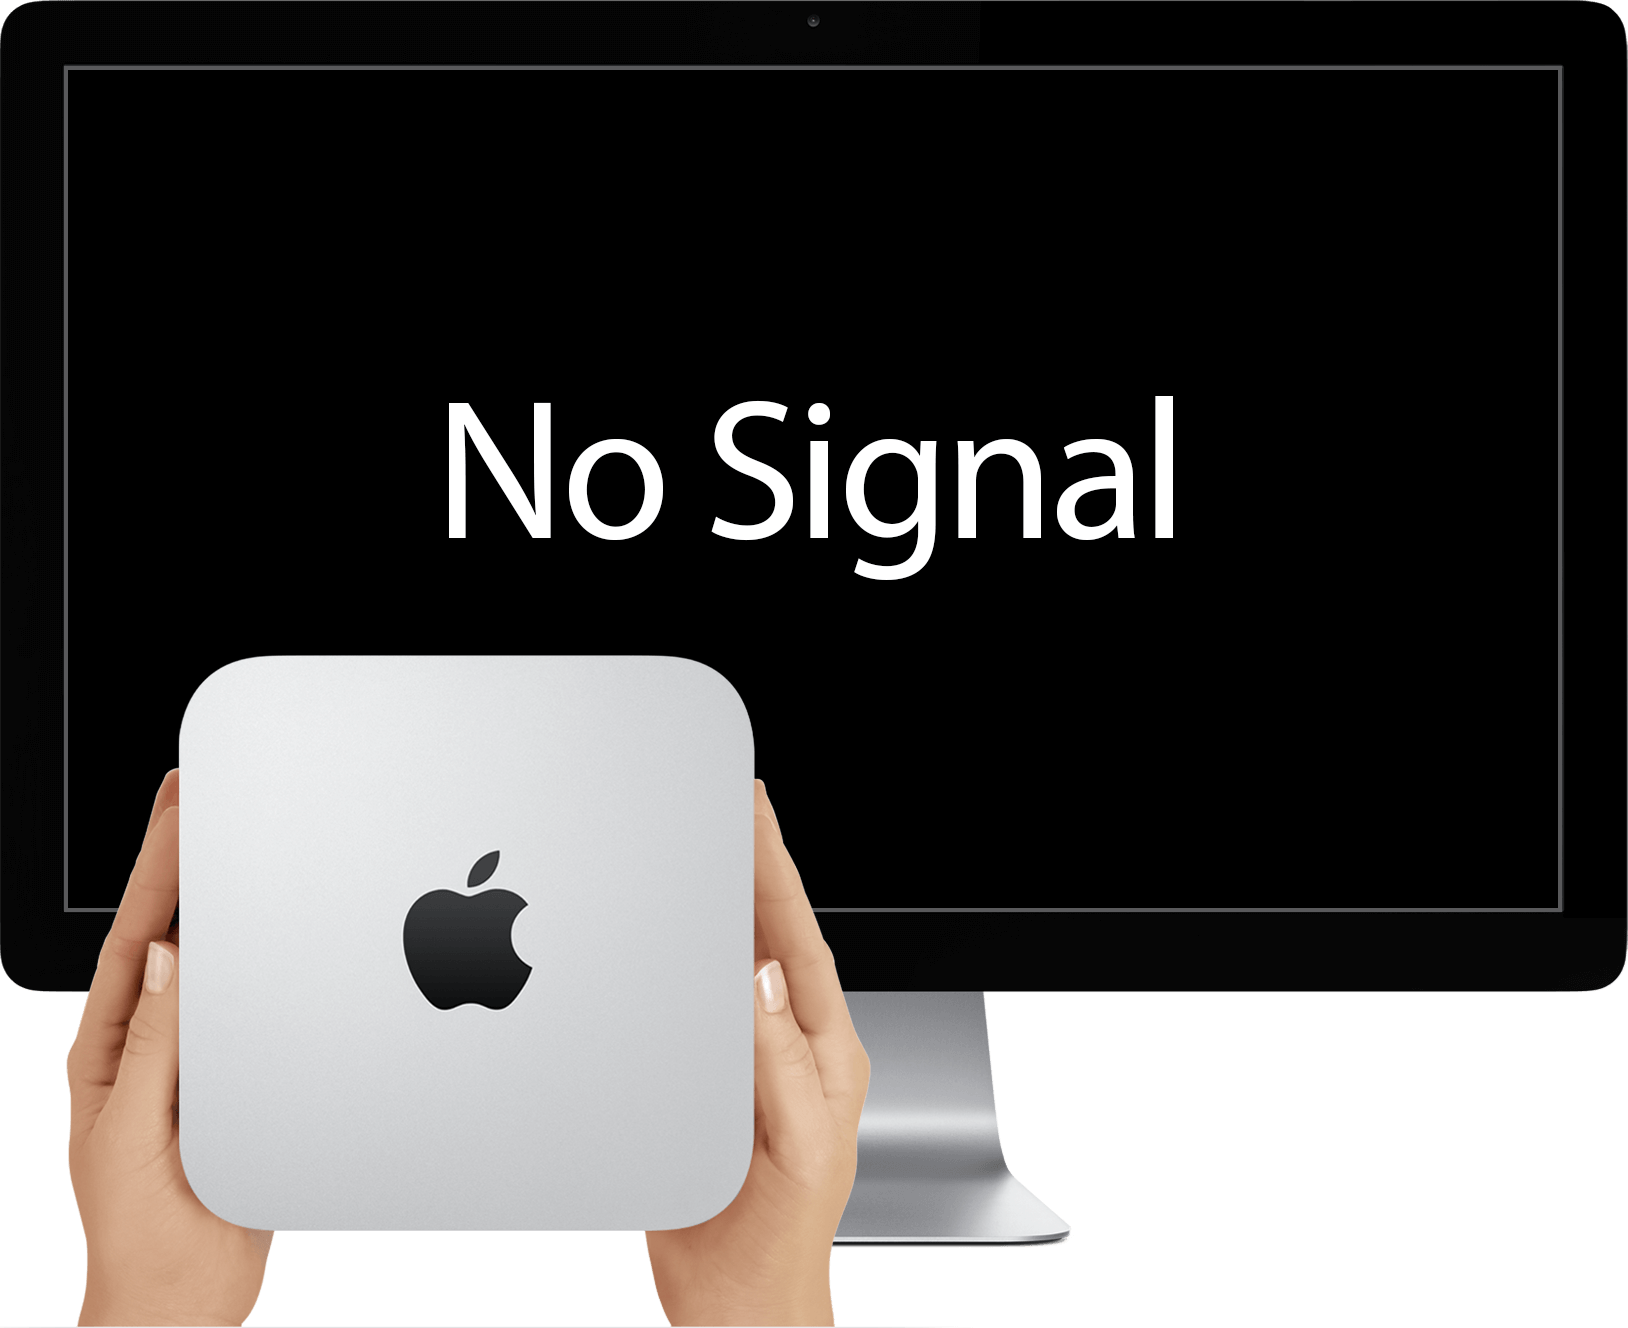 A Mac Mini and Apple Display. There is no video signal